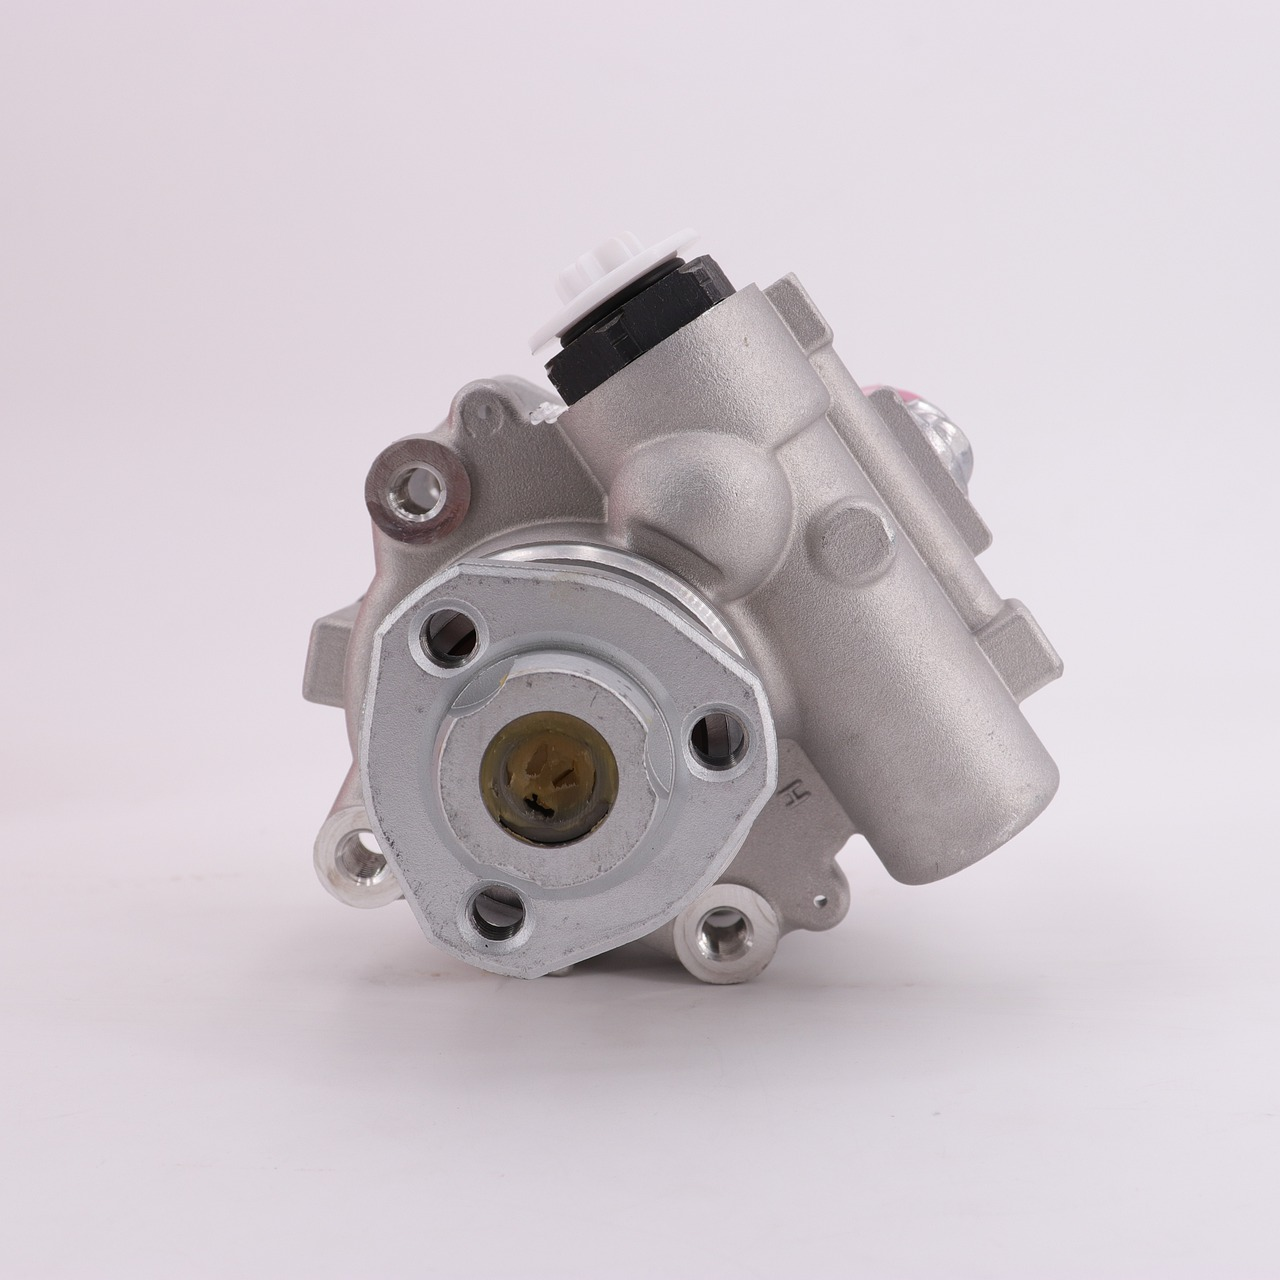 How To Save Money With The Right Hydraulic Pump